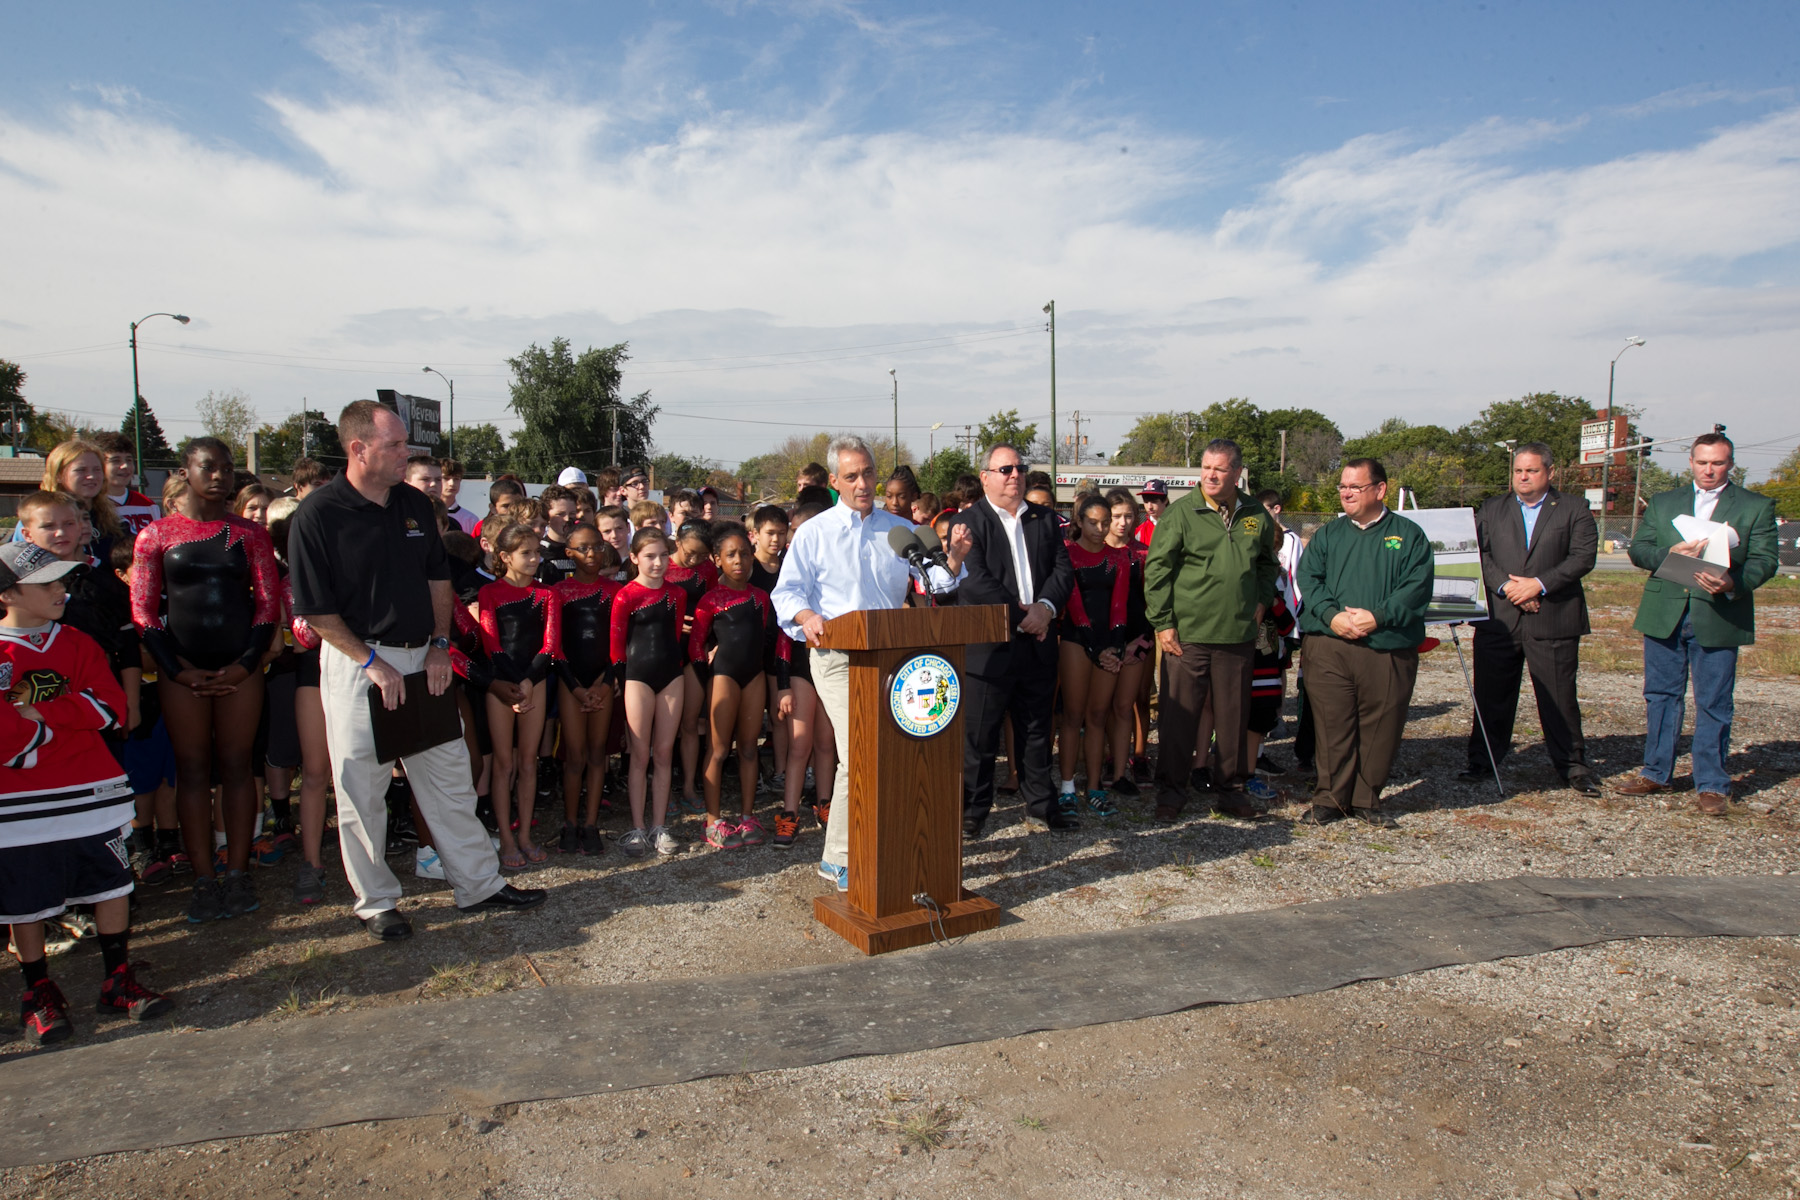 Mayor Rahm Emanuel, Chicago Park District Superintendent Michael Kelly, Alderman Matt O'Shea and community members from Morgan Park and Beverly gather to announce a new sports complex that will feature an indoor ice rink and gymnastics center.